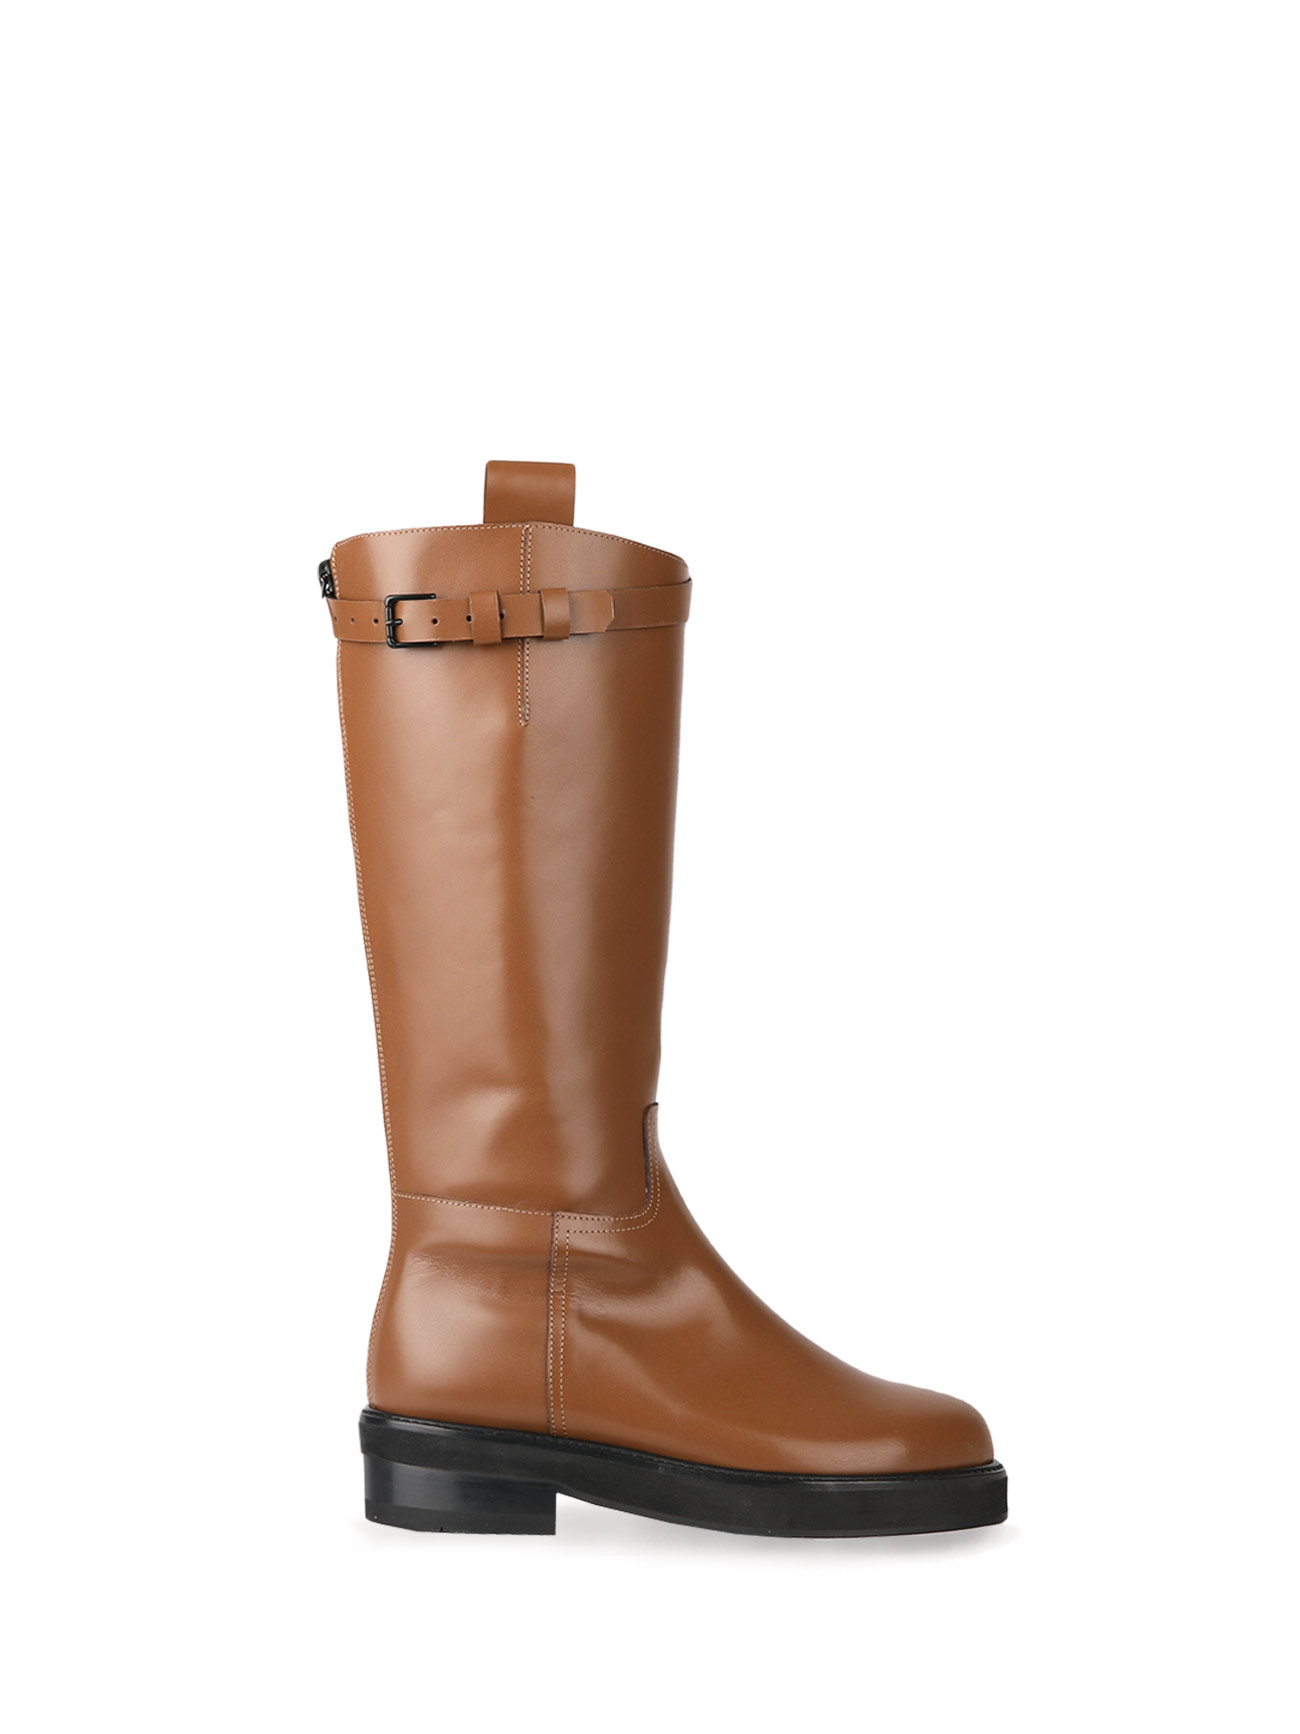 JOY BUCKLE-STRAP HALF BOOTS - MILK BROWN (4cm)